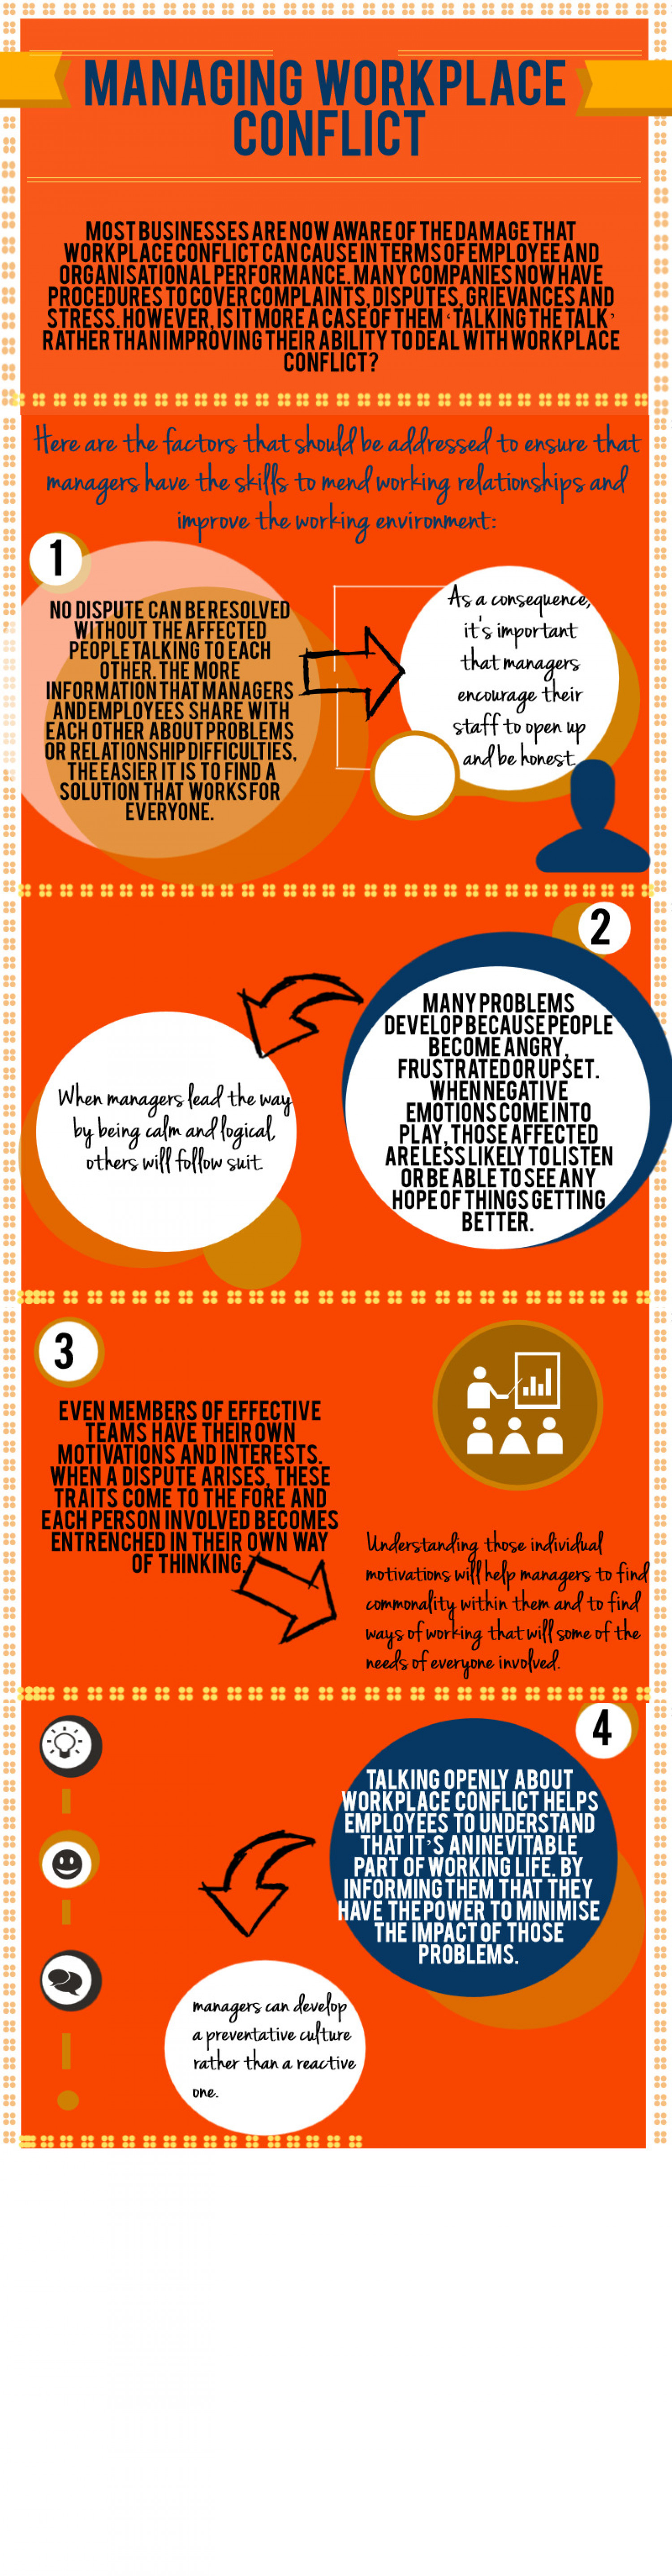 Managing workplace conflict Infographic